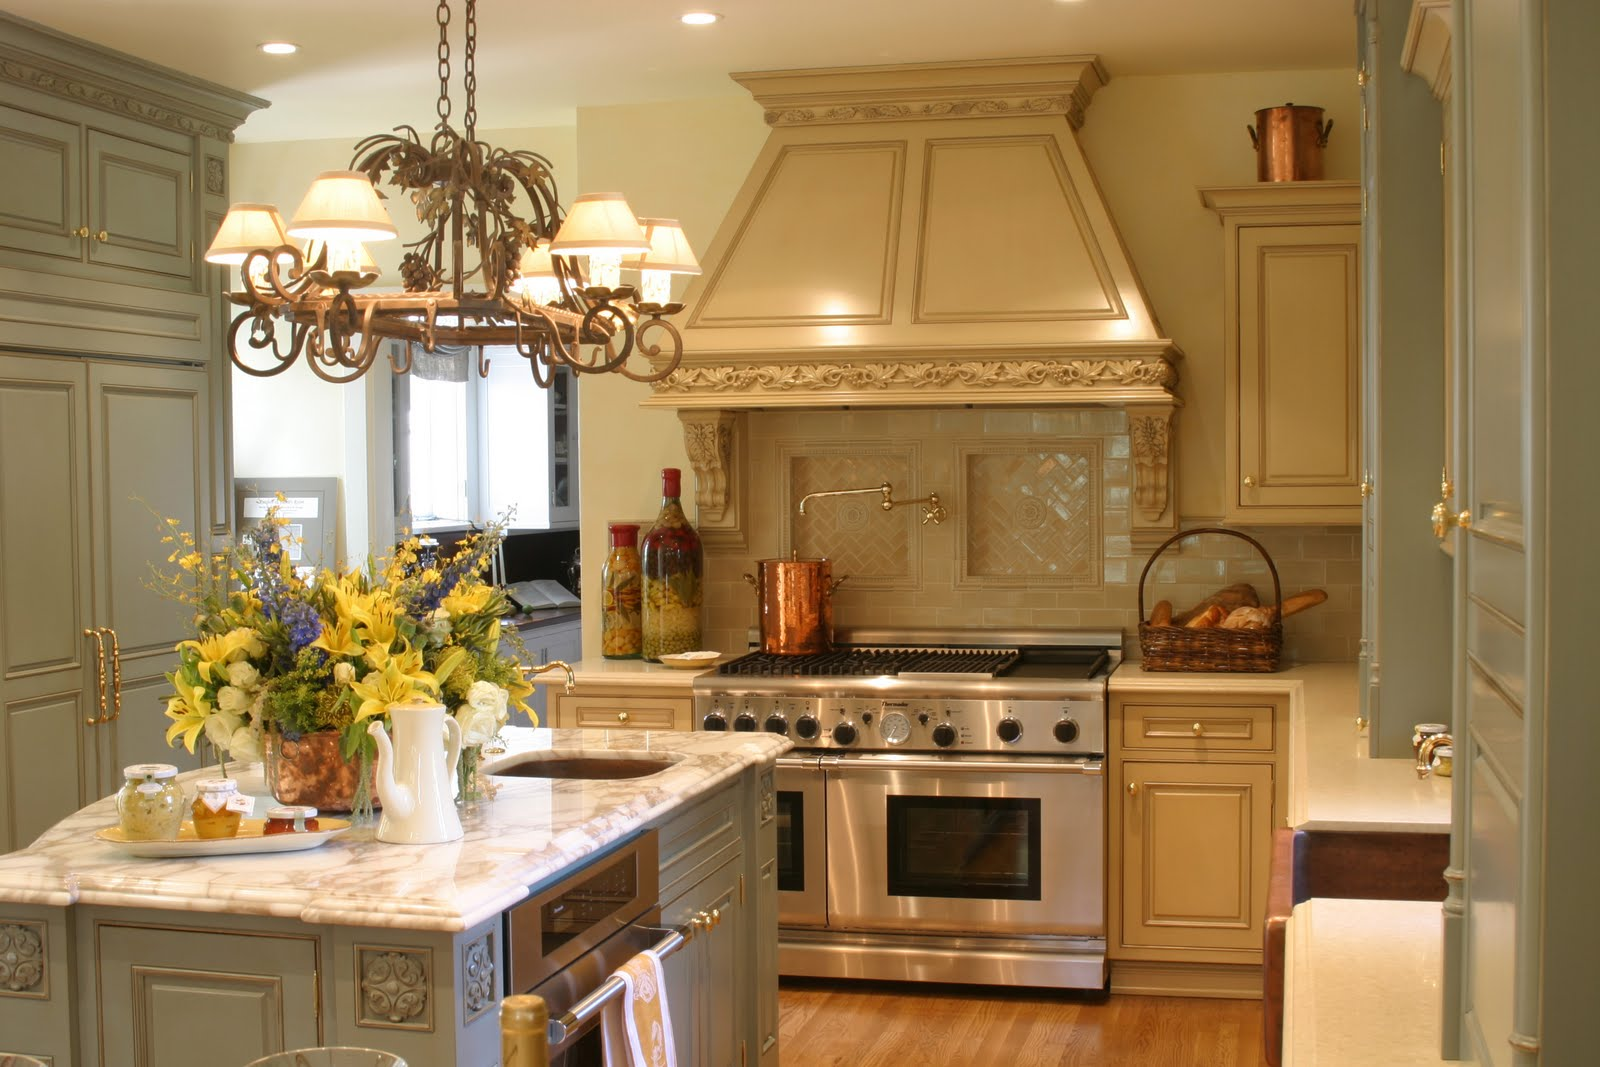 cost of small kitchen remodel kitchen remodel pictures cost of small kitchen remodel photo 2